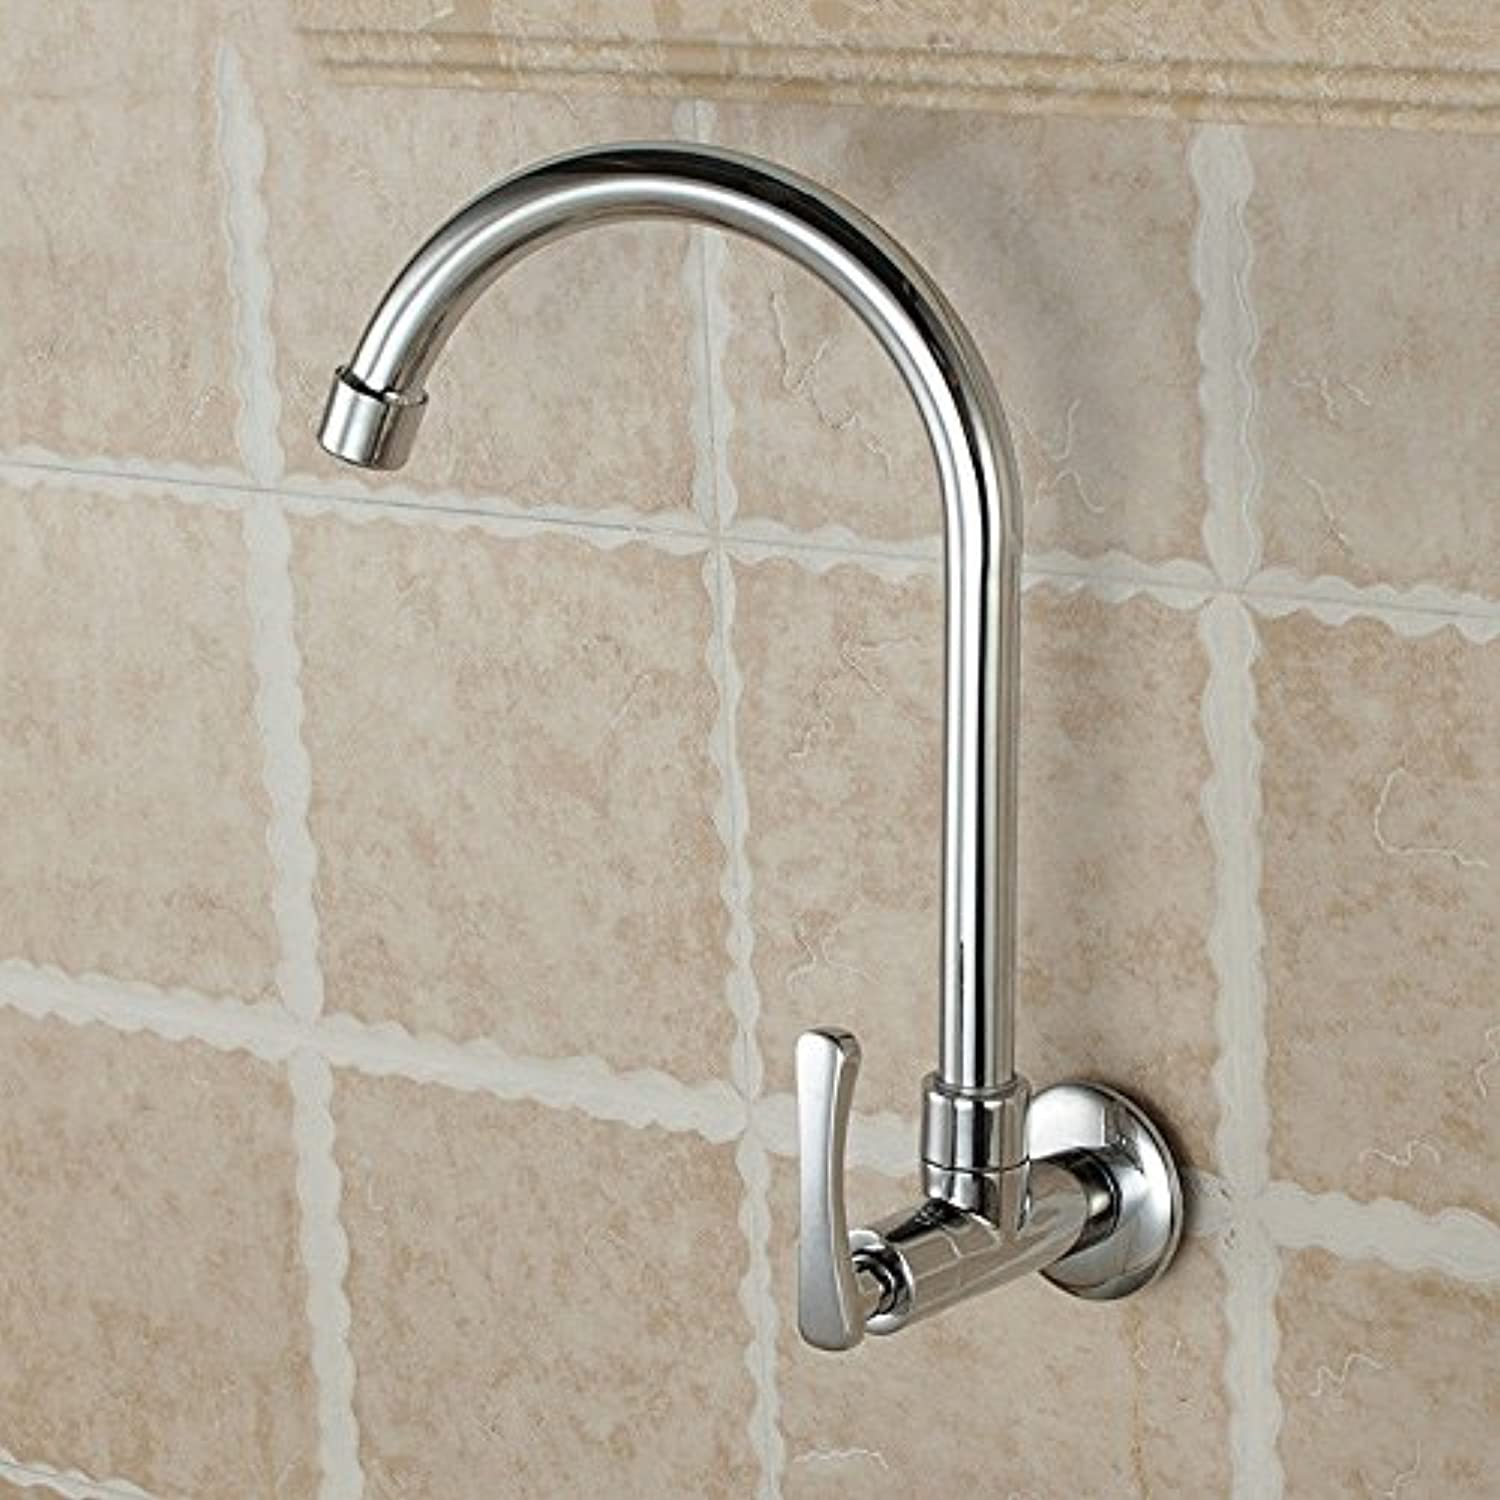 Lalaky Taps Faucet Kitchen Mixer Sink Waterfall Bathroom Mixer Basin Mixer Tap for Kitchen Bathroom and Washroom Single Cold Wall-Mounted redatable Copper Body